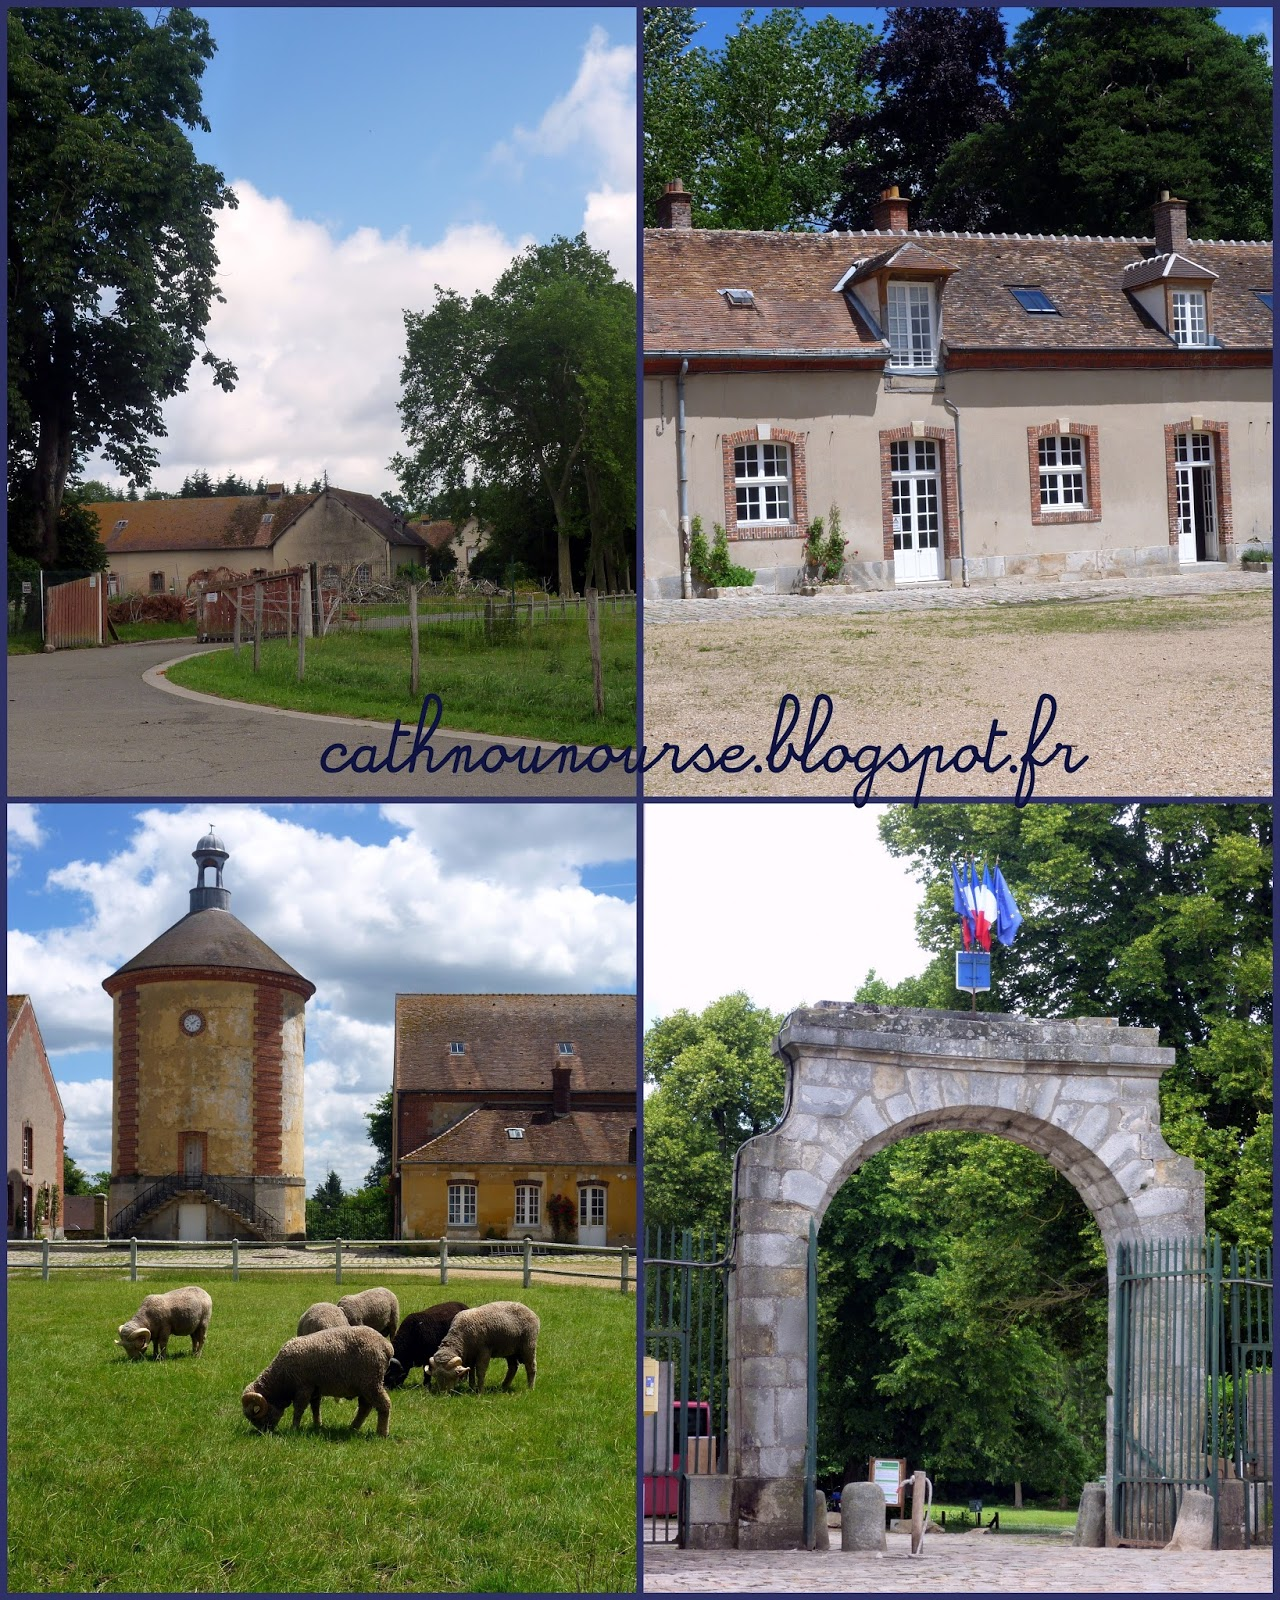 Le blog de cathnounourse visite la bergerie nationale for Visite de rambouillet